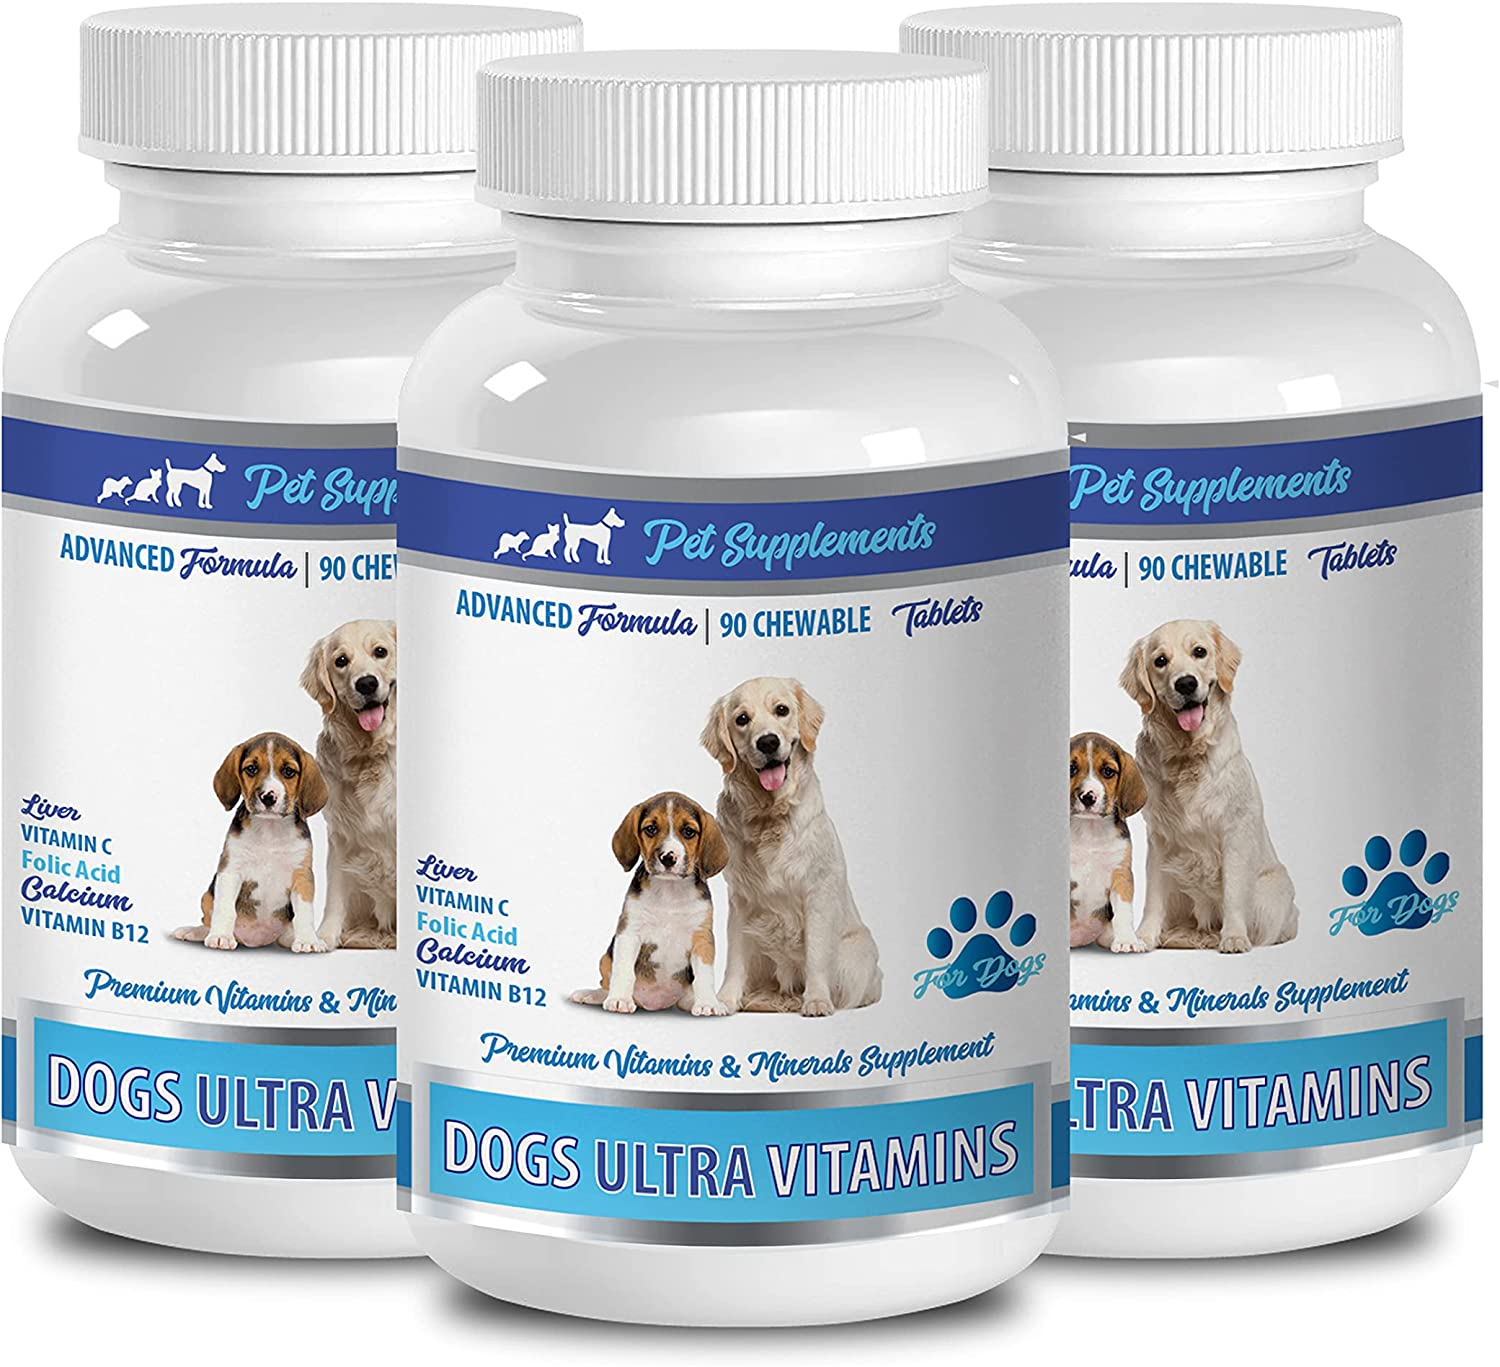 Dog Minerals Max 83% OFF - Ultra Vitamins Sale Formul Chews Powerful for Dogs